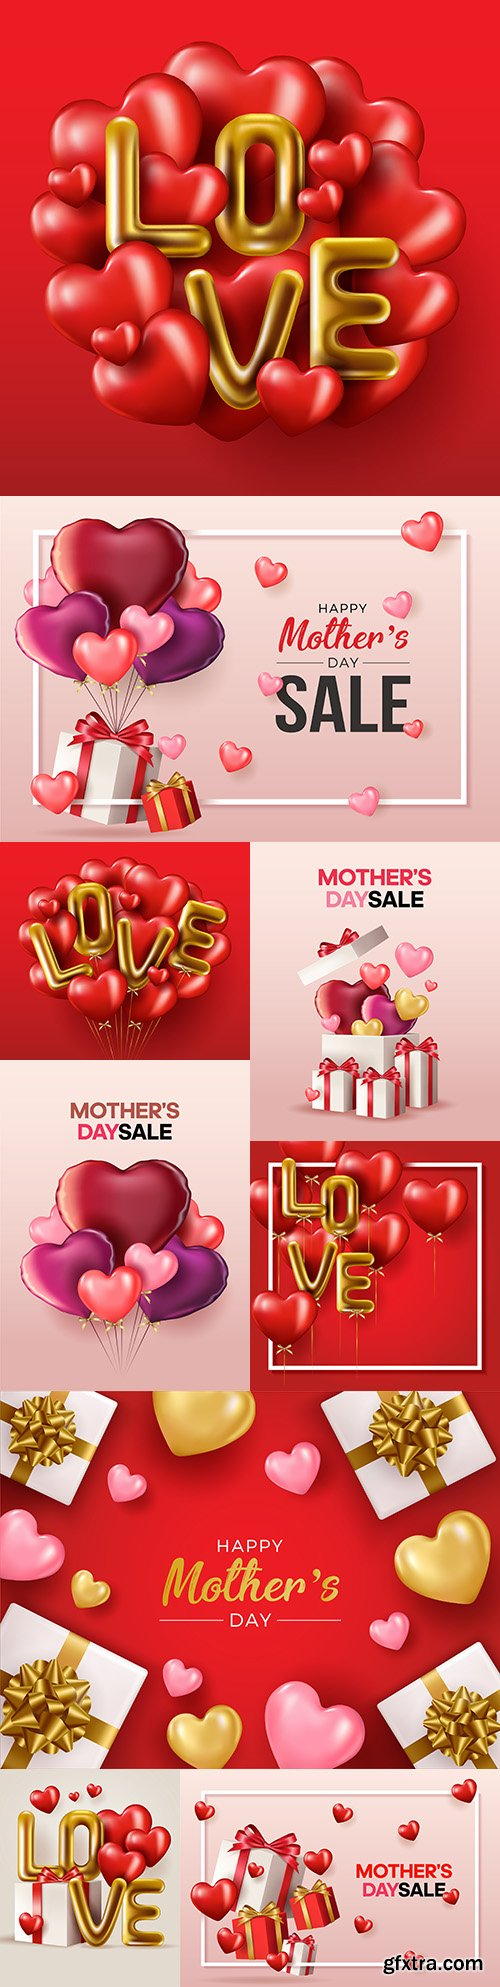 Happy Mother's Day design banner with gifts and hearts